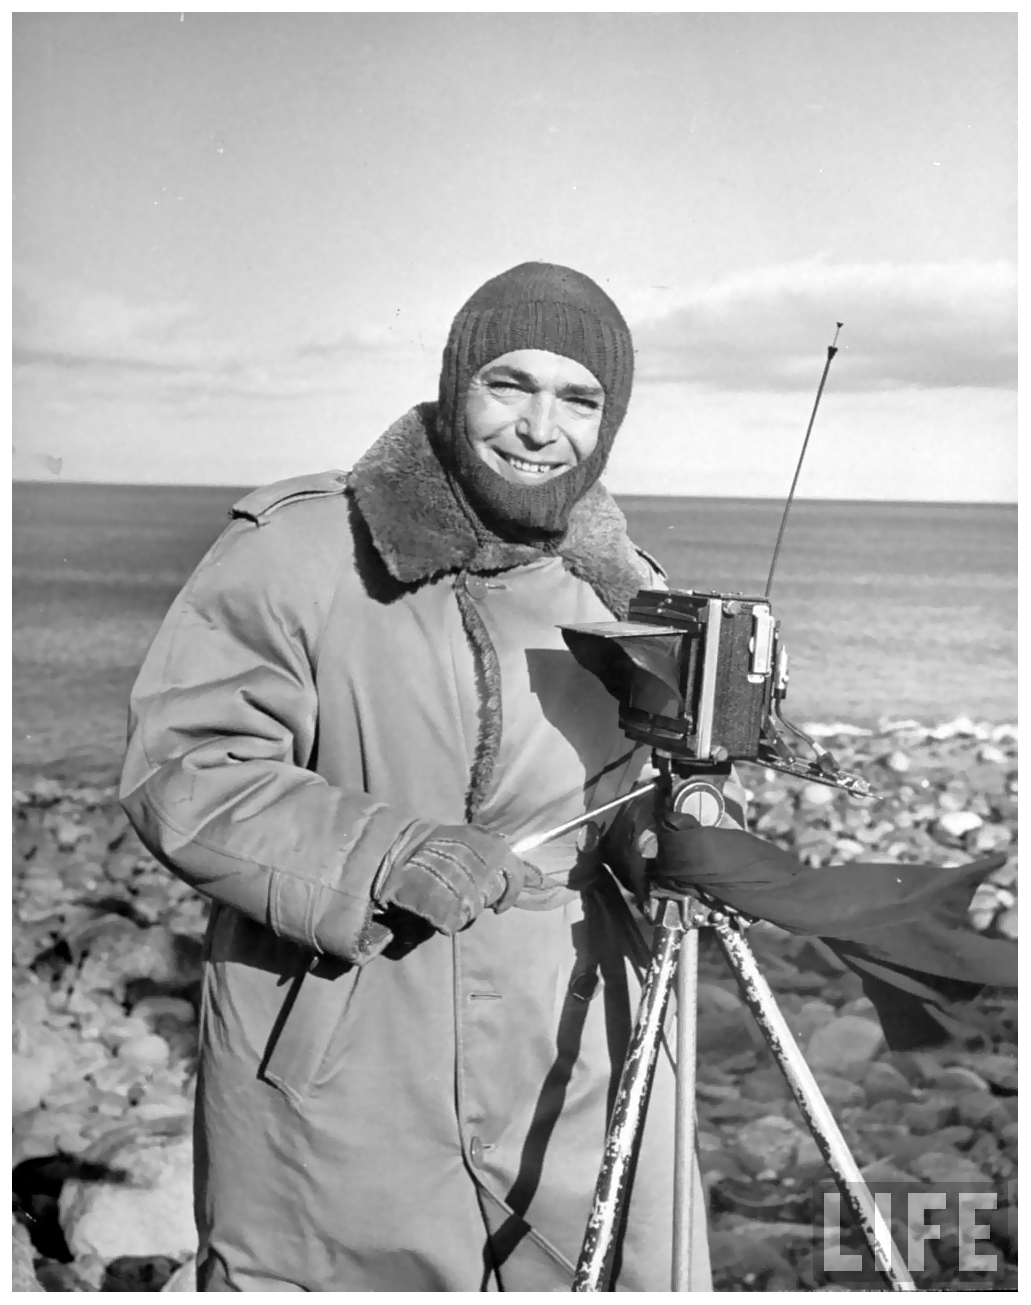 photographer-life-eliot-elisofon-on-assignment-dealing-with-atlantic-coastline-1946.jpeg